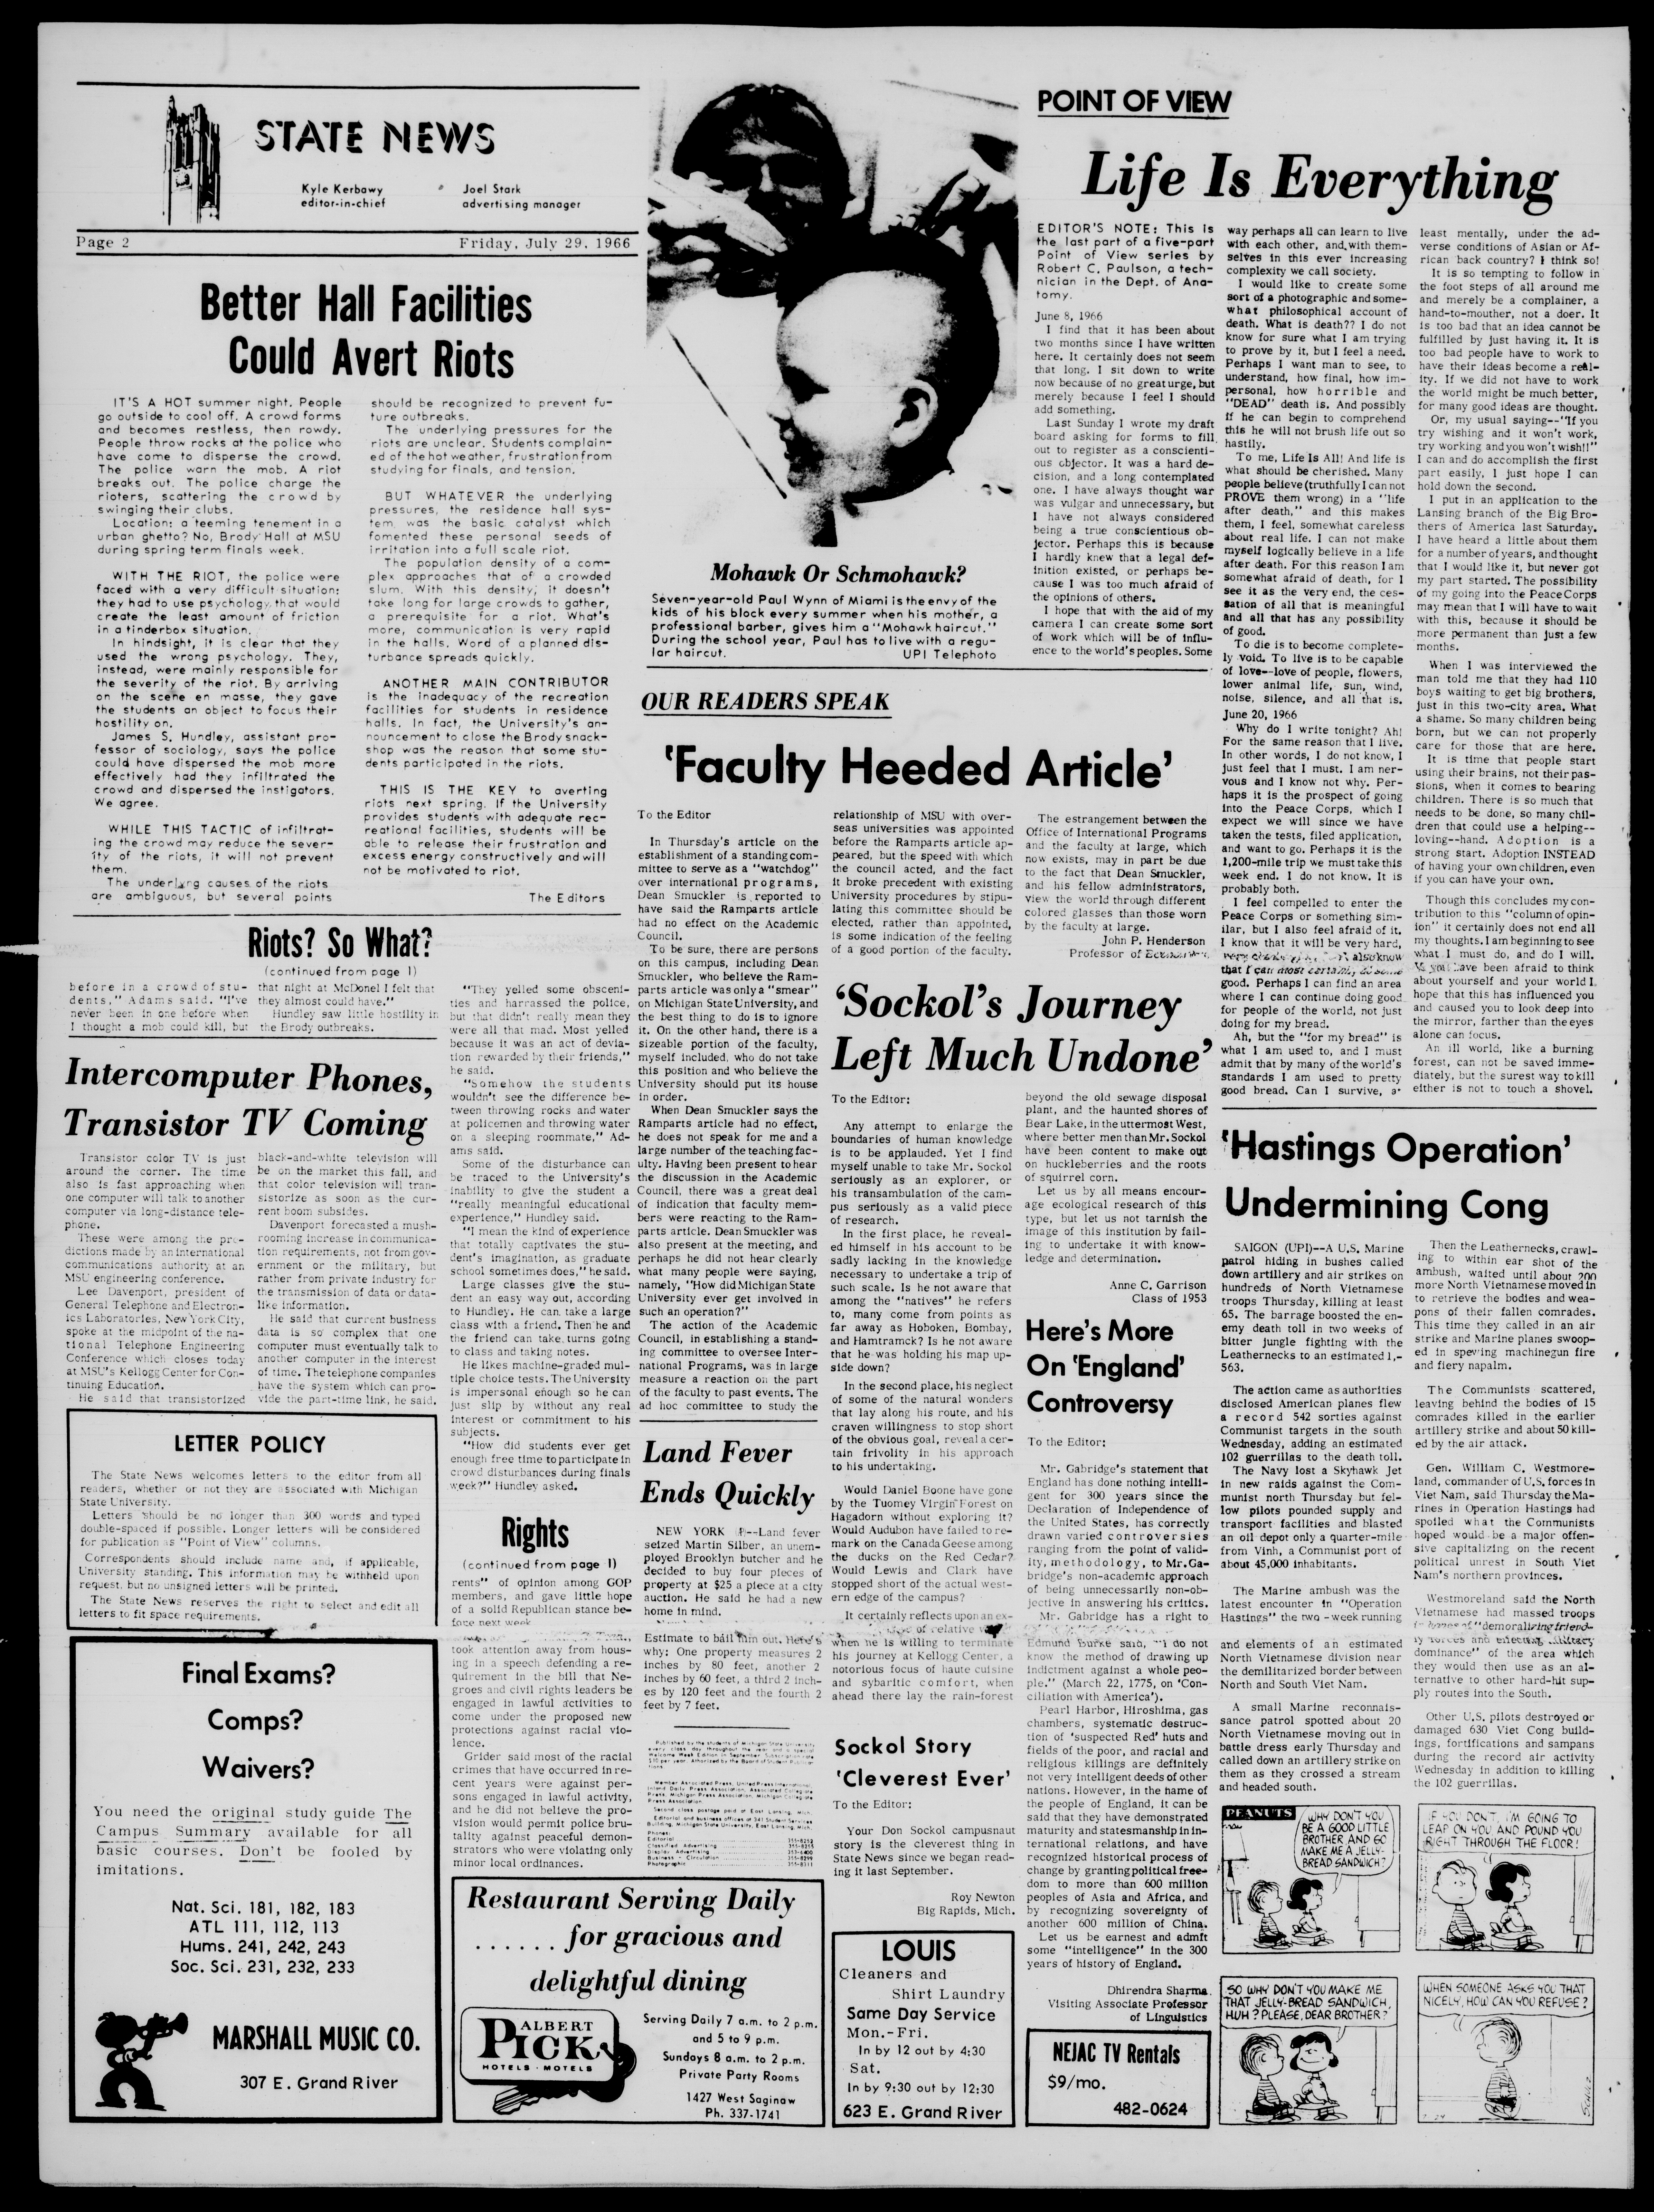 Index of /DMC/state_news/1966/state_news_19660729